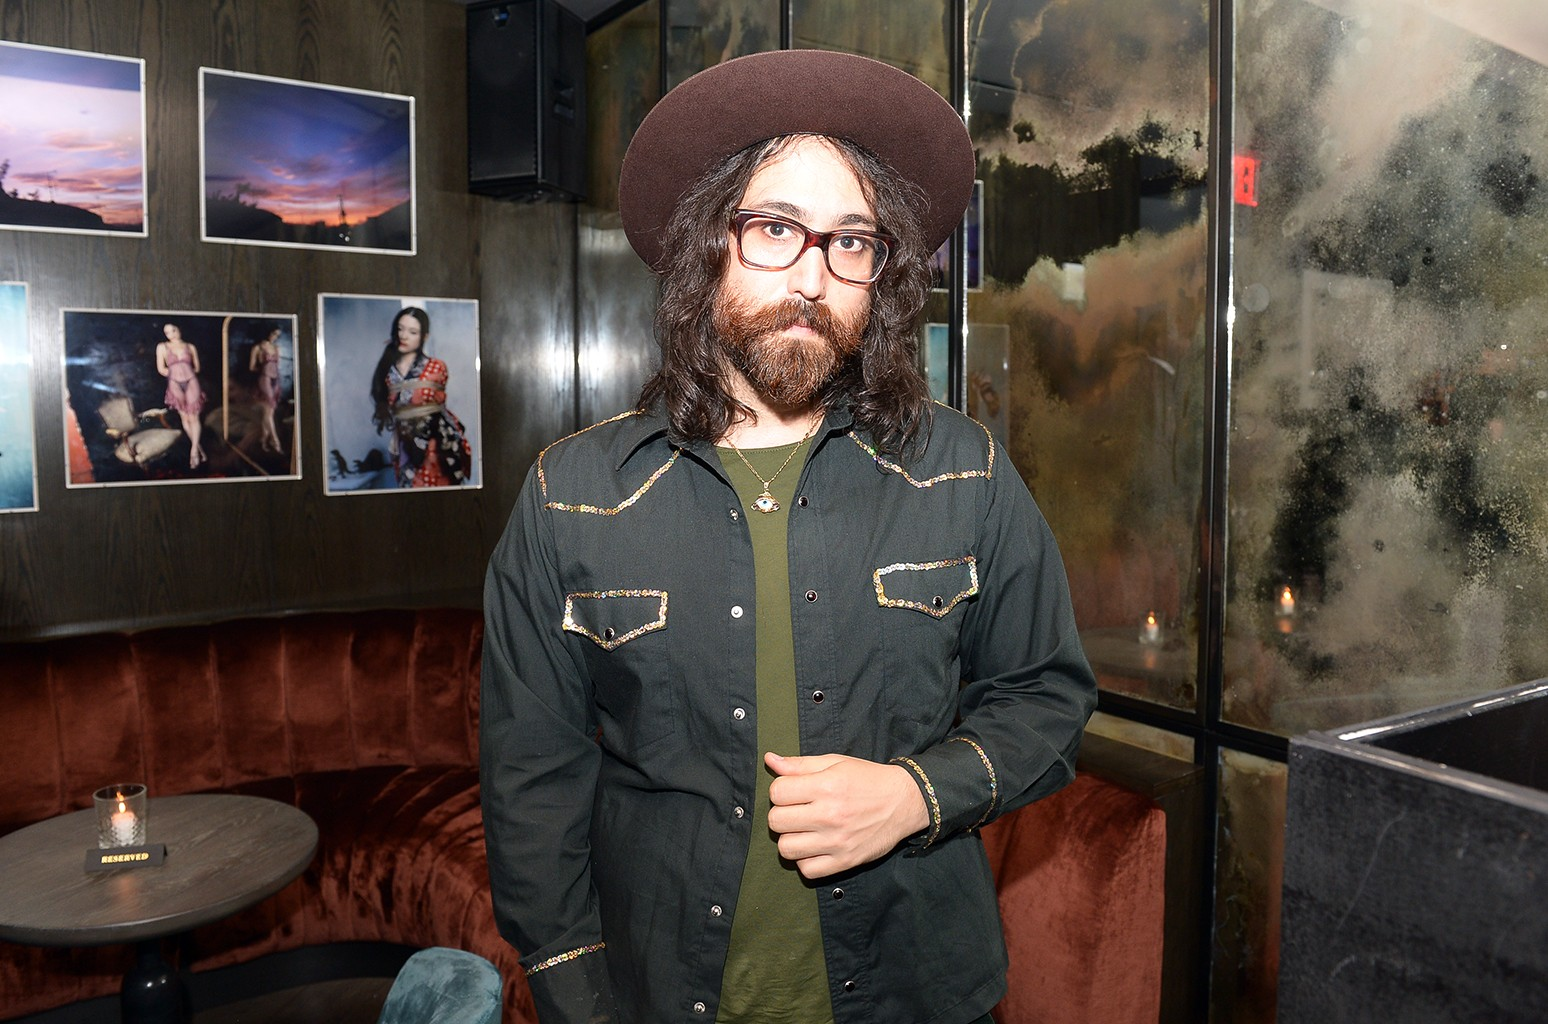 Sean Lennon photographed on Sept. 8, 2016 in New York City.